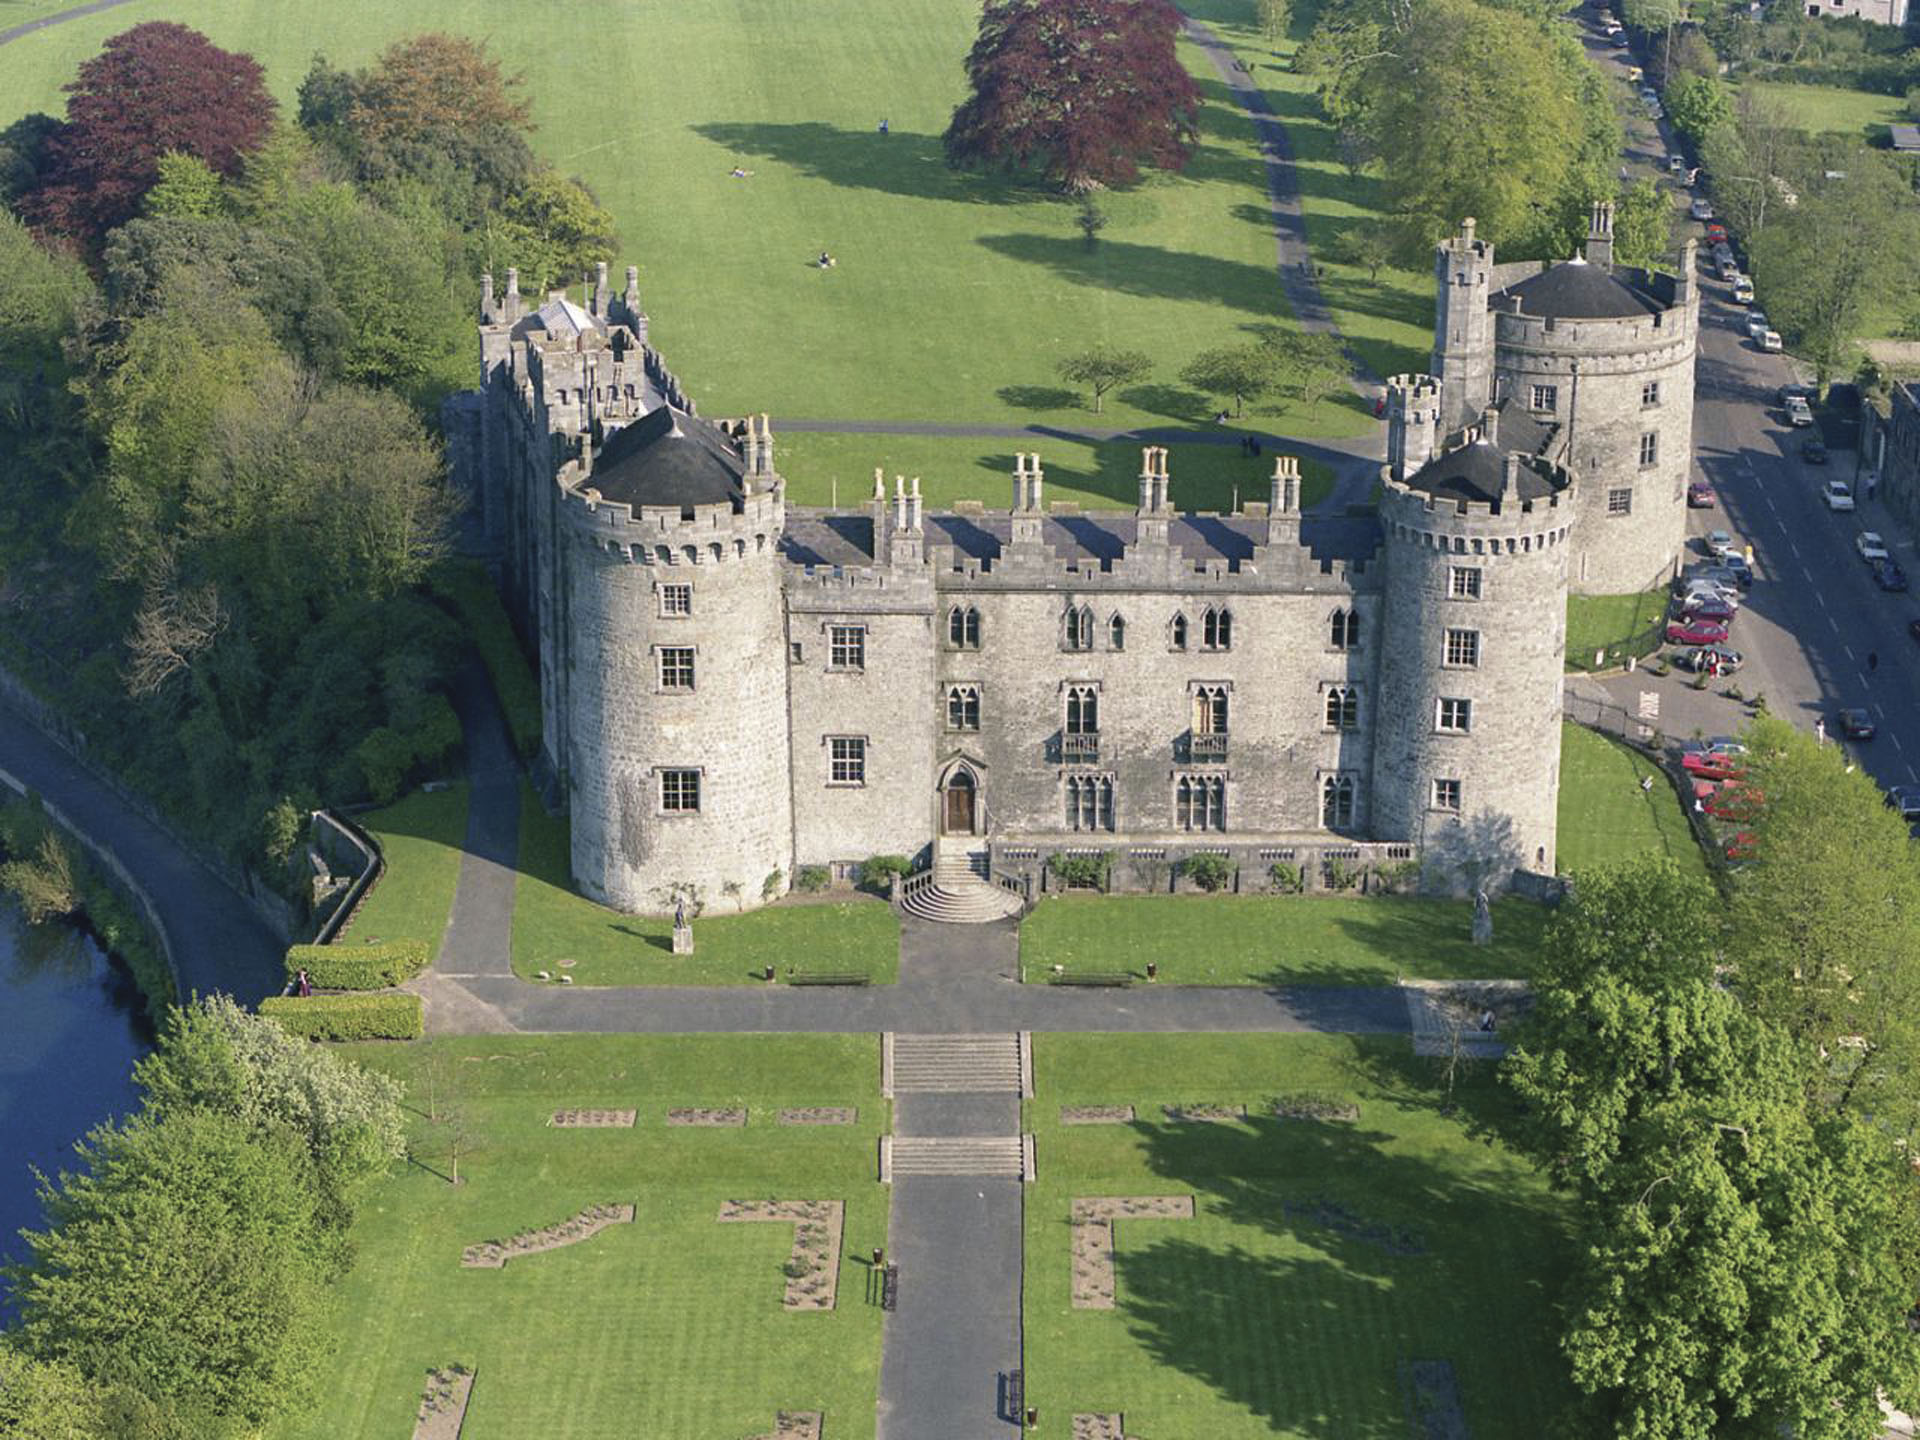 Kilkenny Castle, which was built in 1195 to control a fording-point of the River Nore and the junction of several routeways.